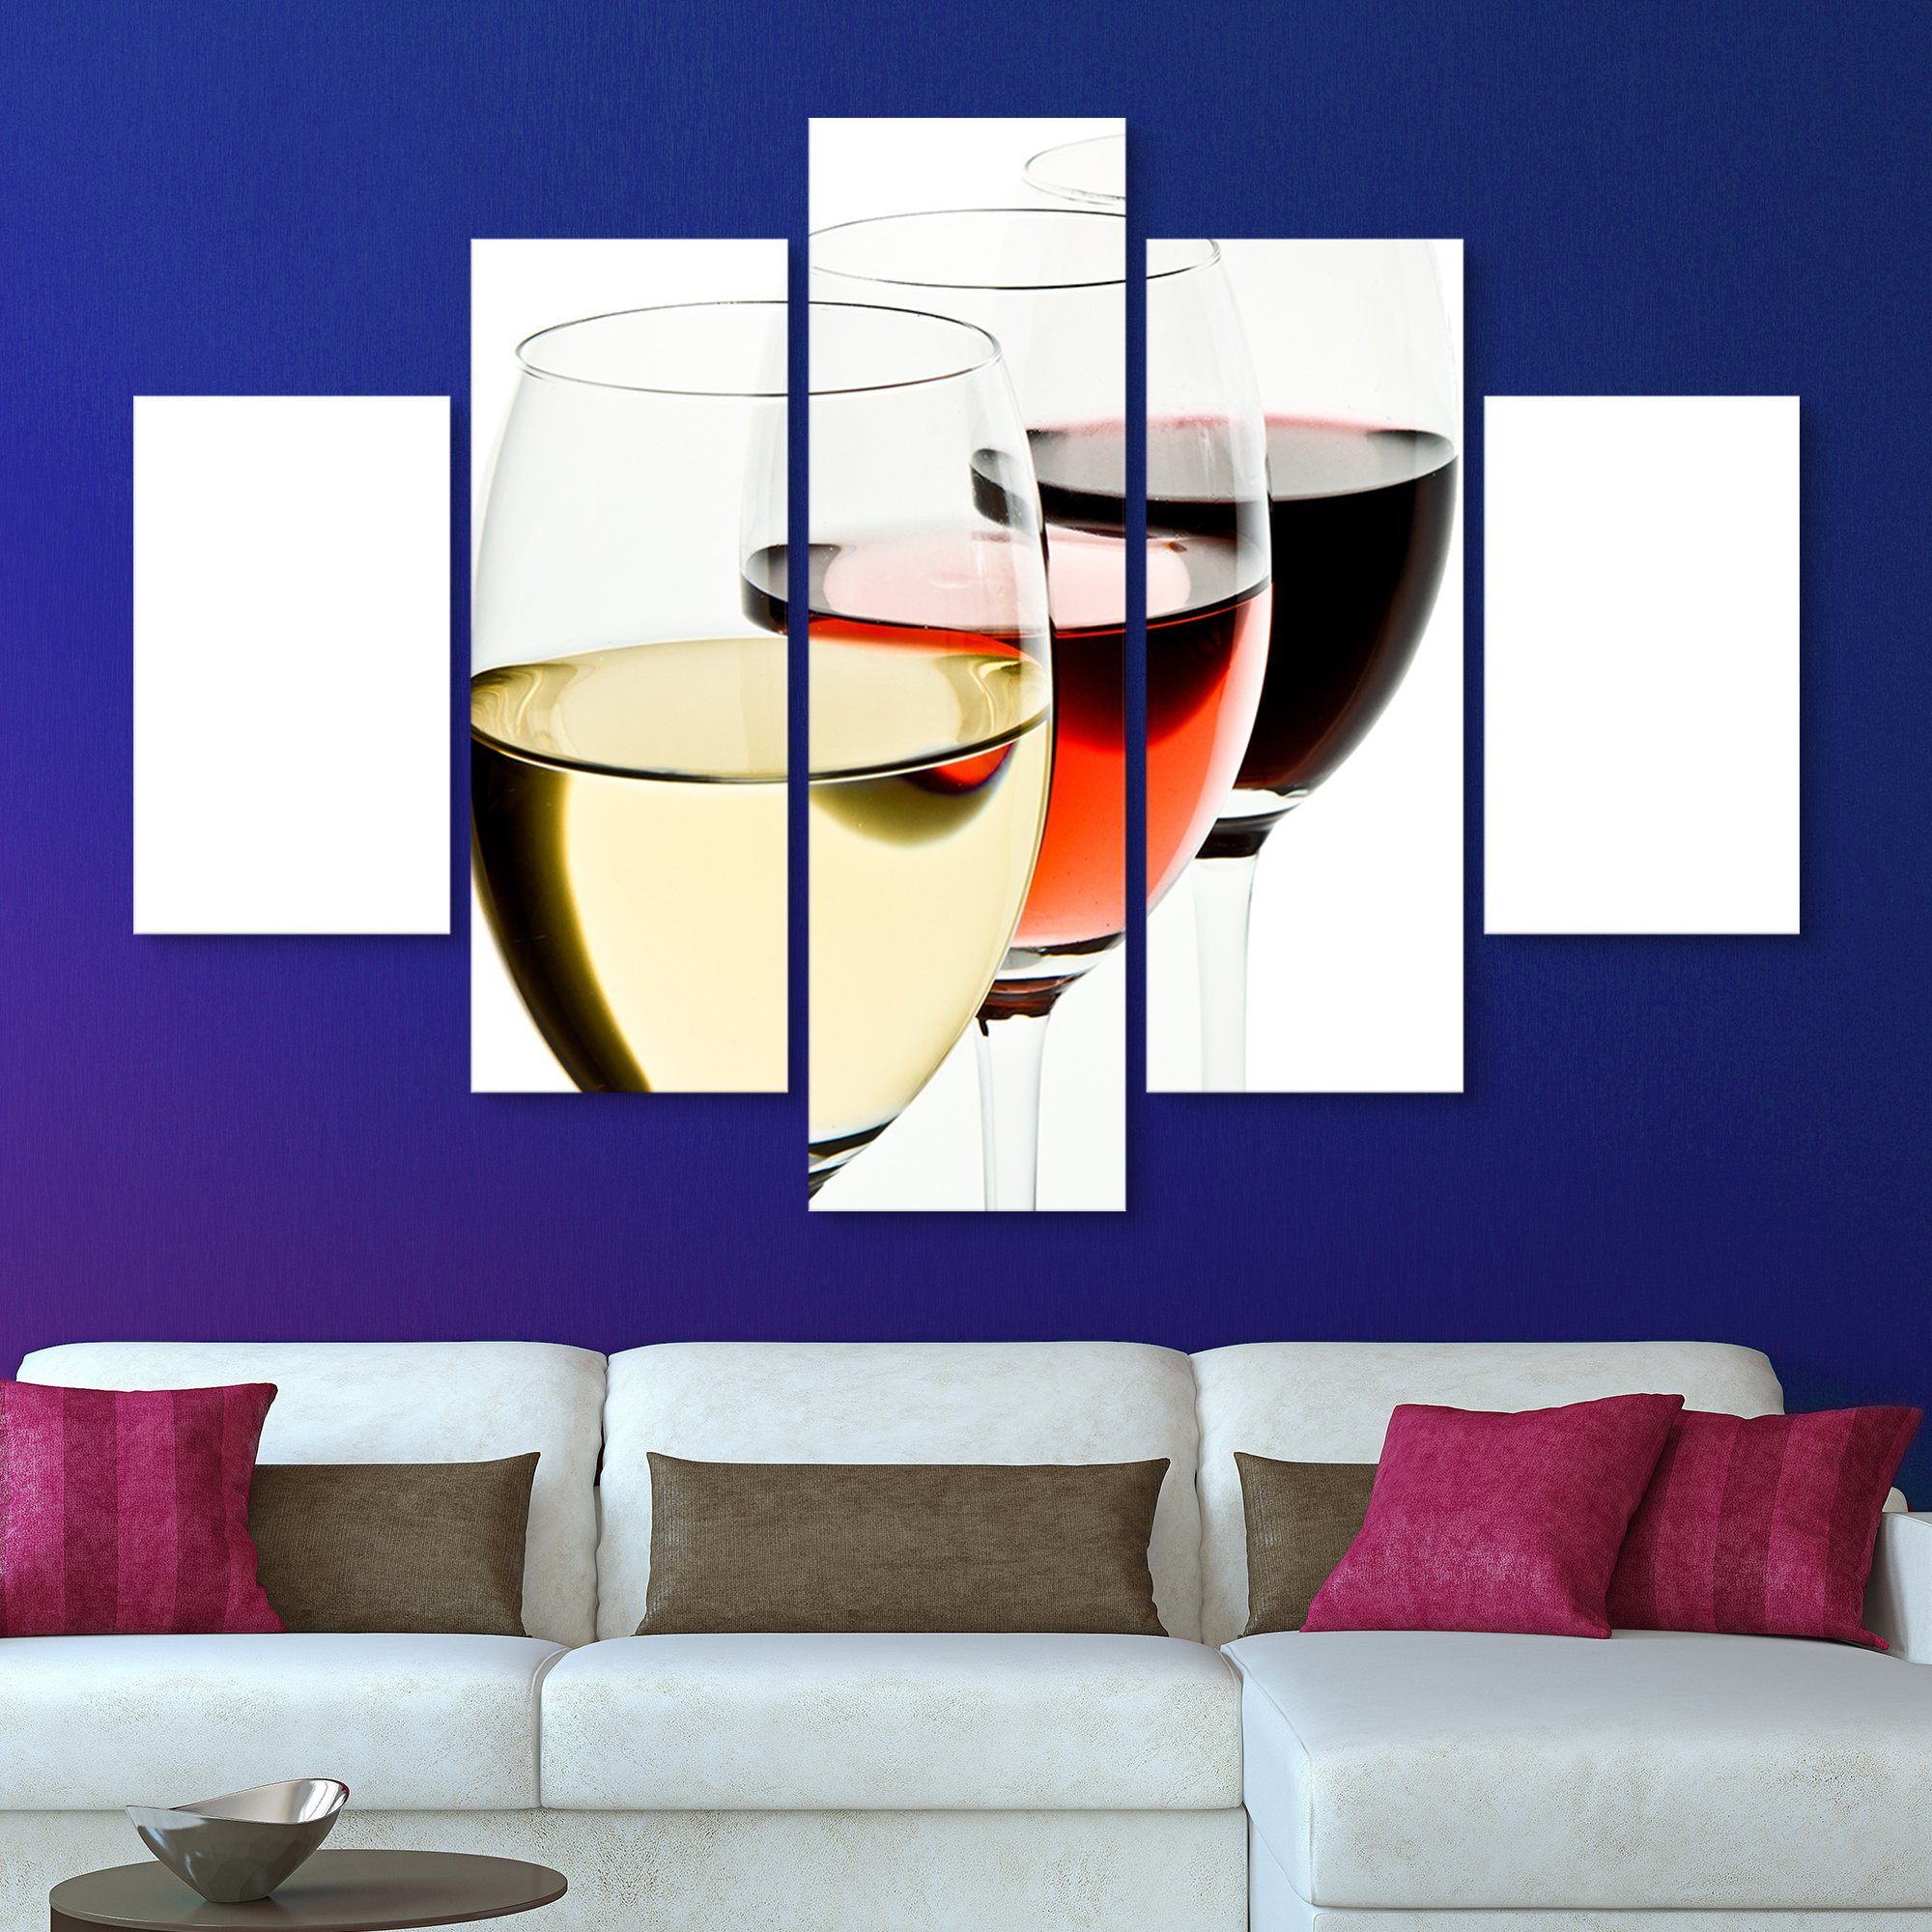 5 piece White, Rose, Red Wine wall art